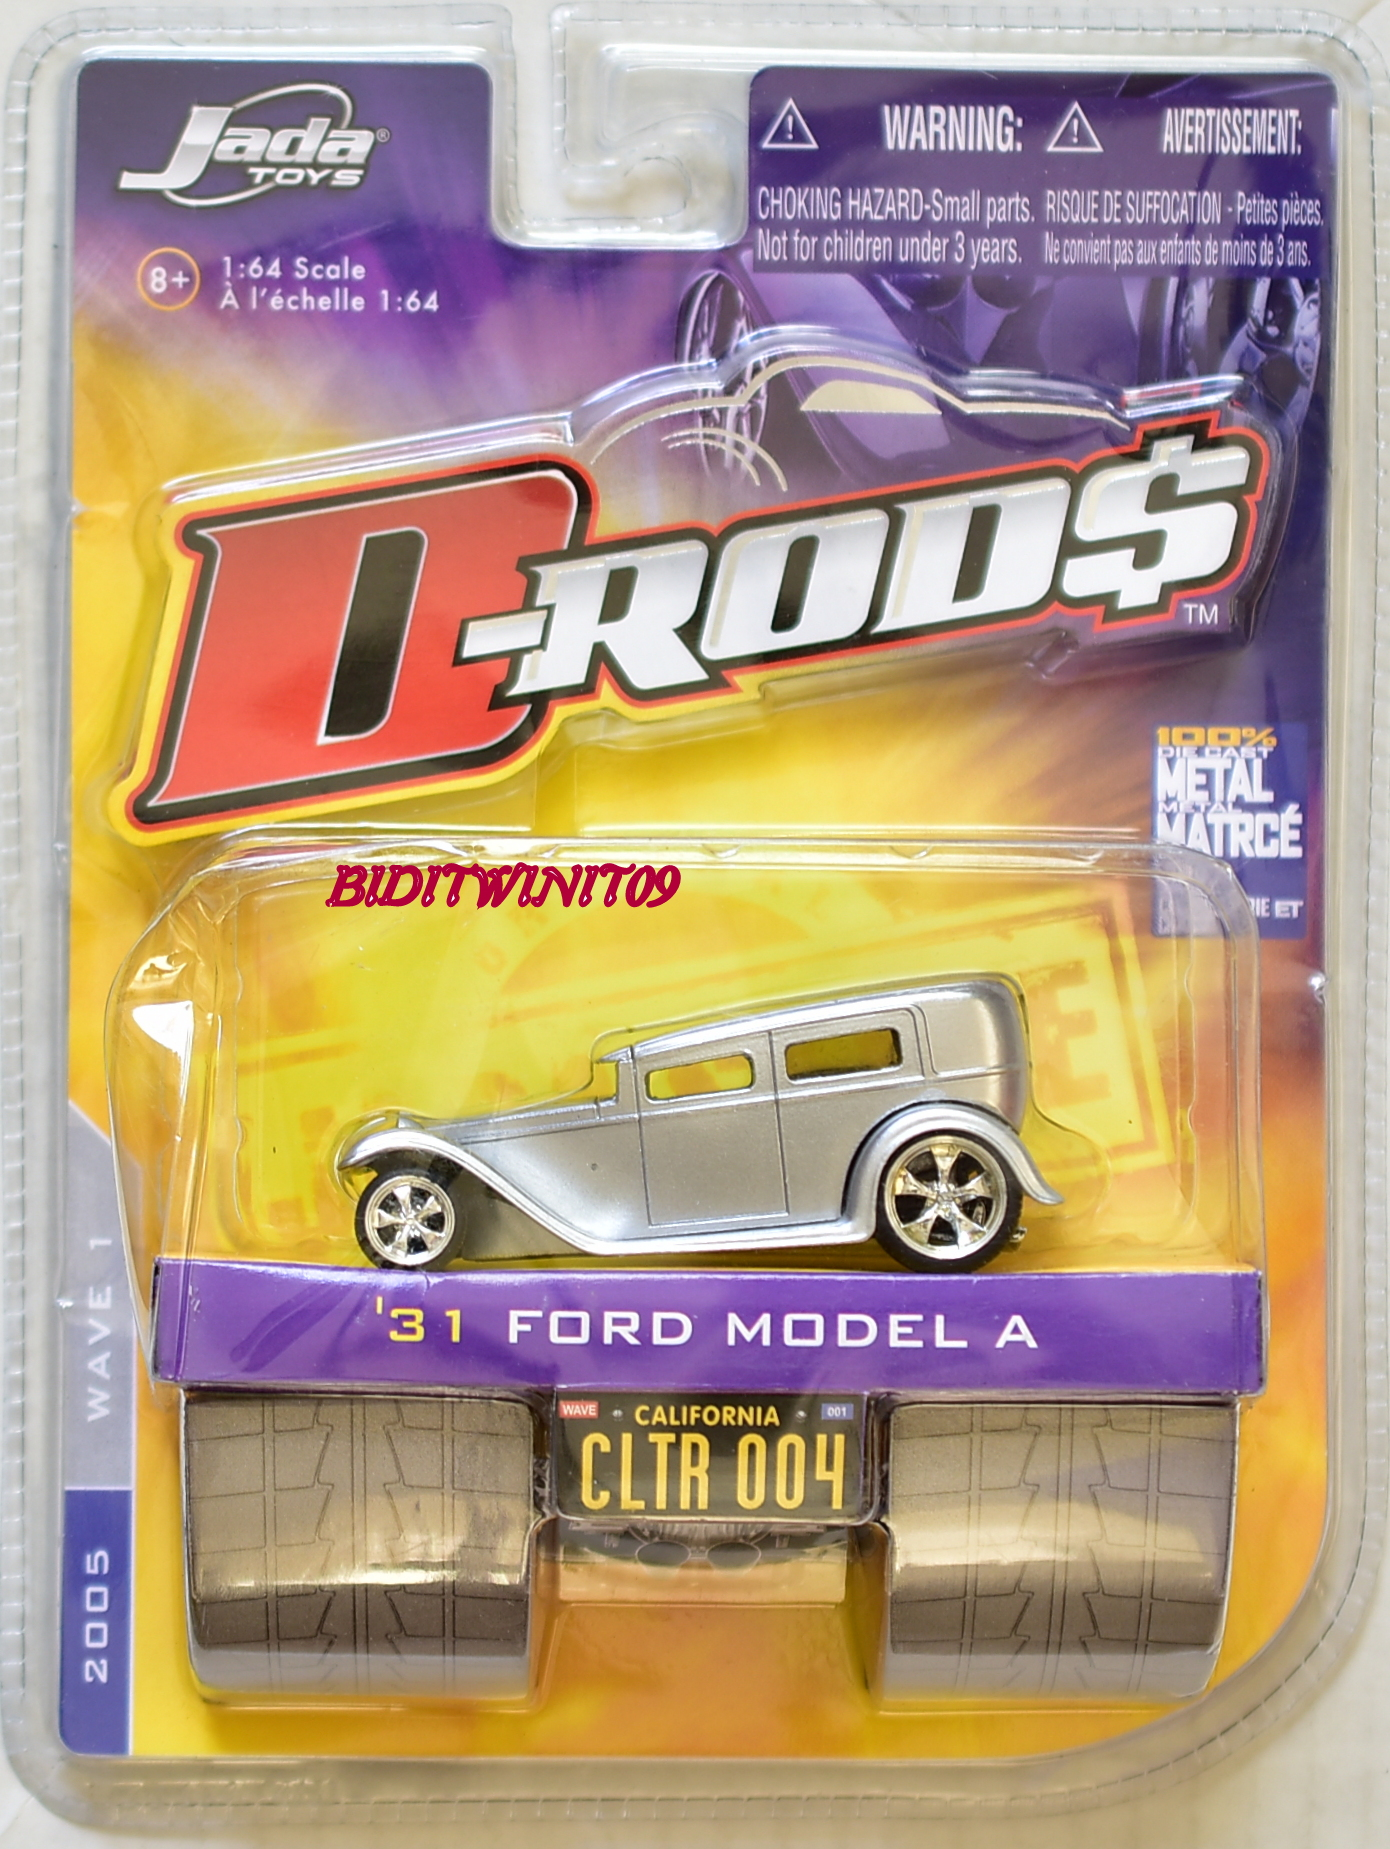 JADA TOYS D-RODS '31 FORD MODEL A CLTR 004 E+